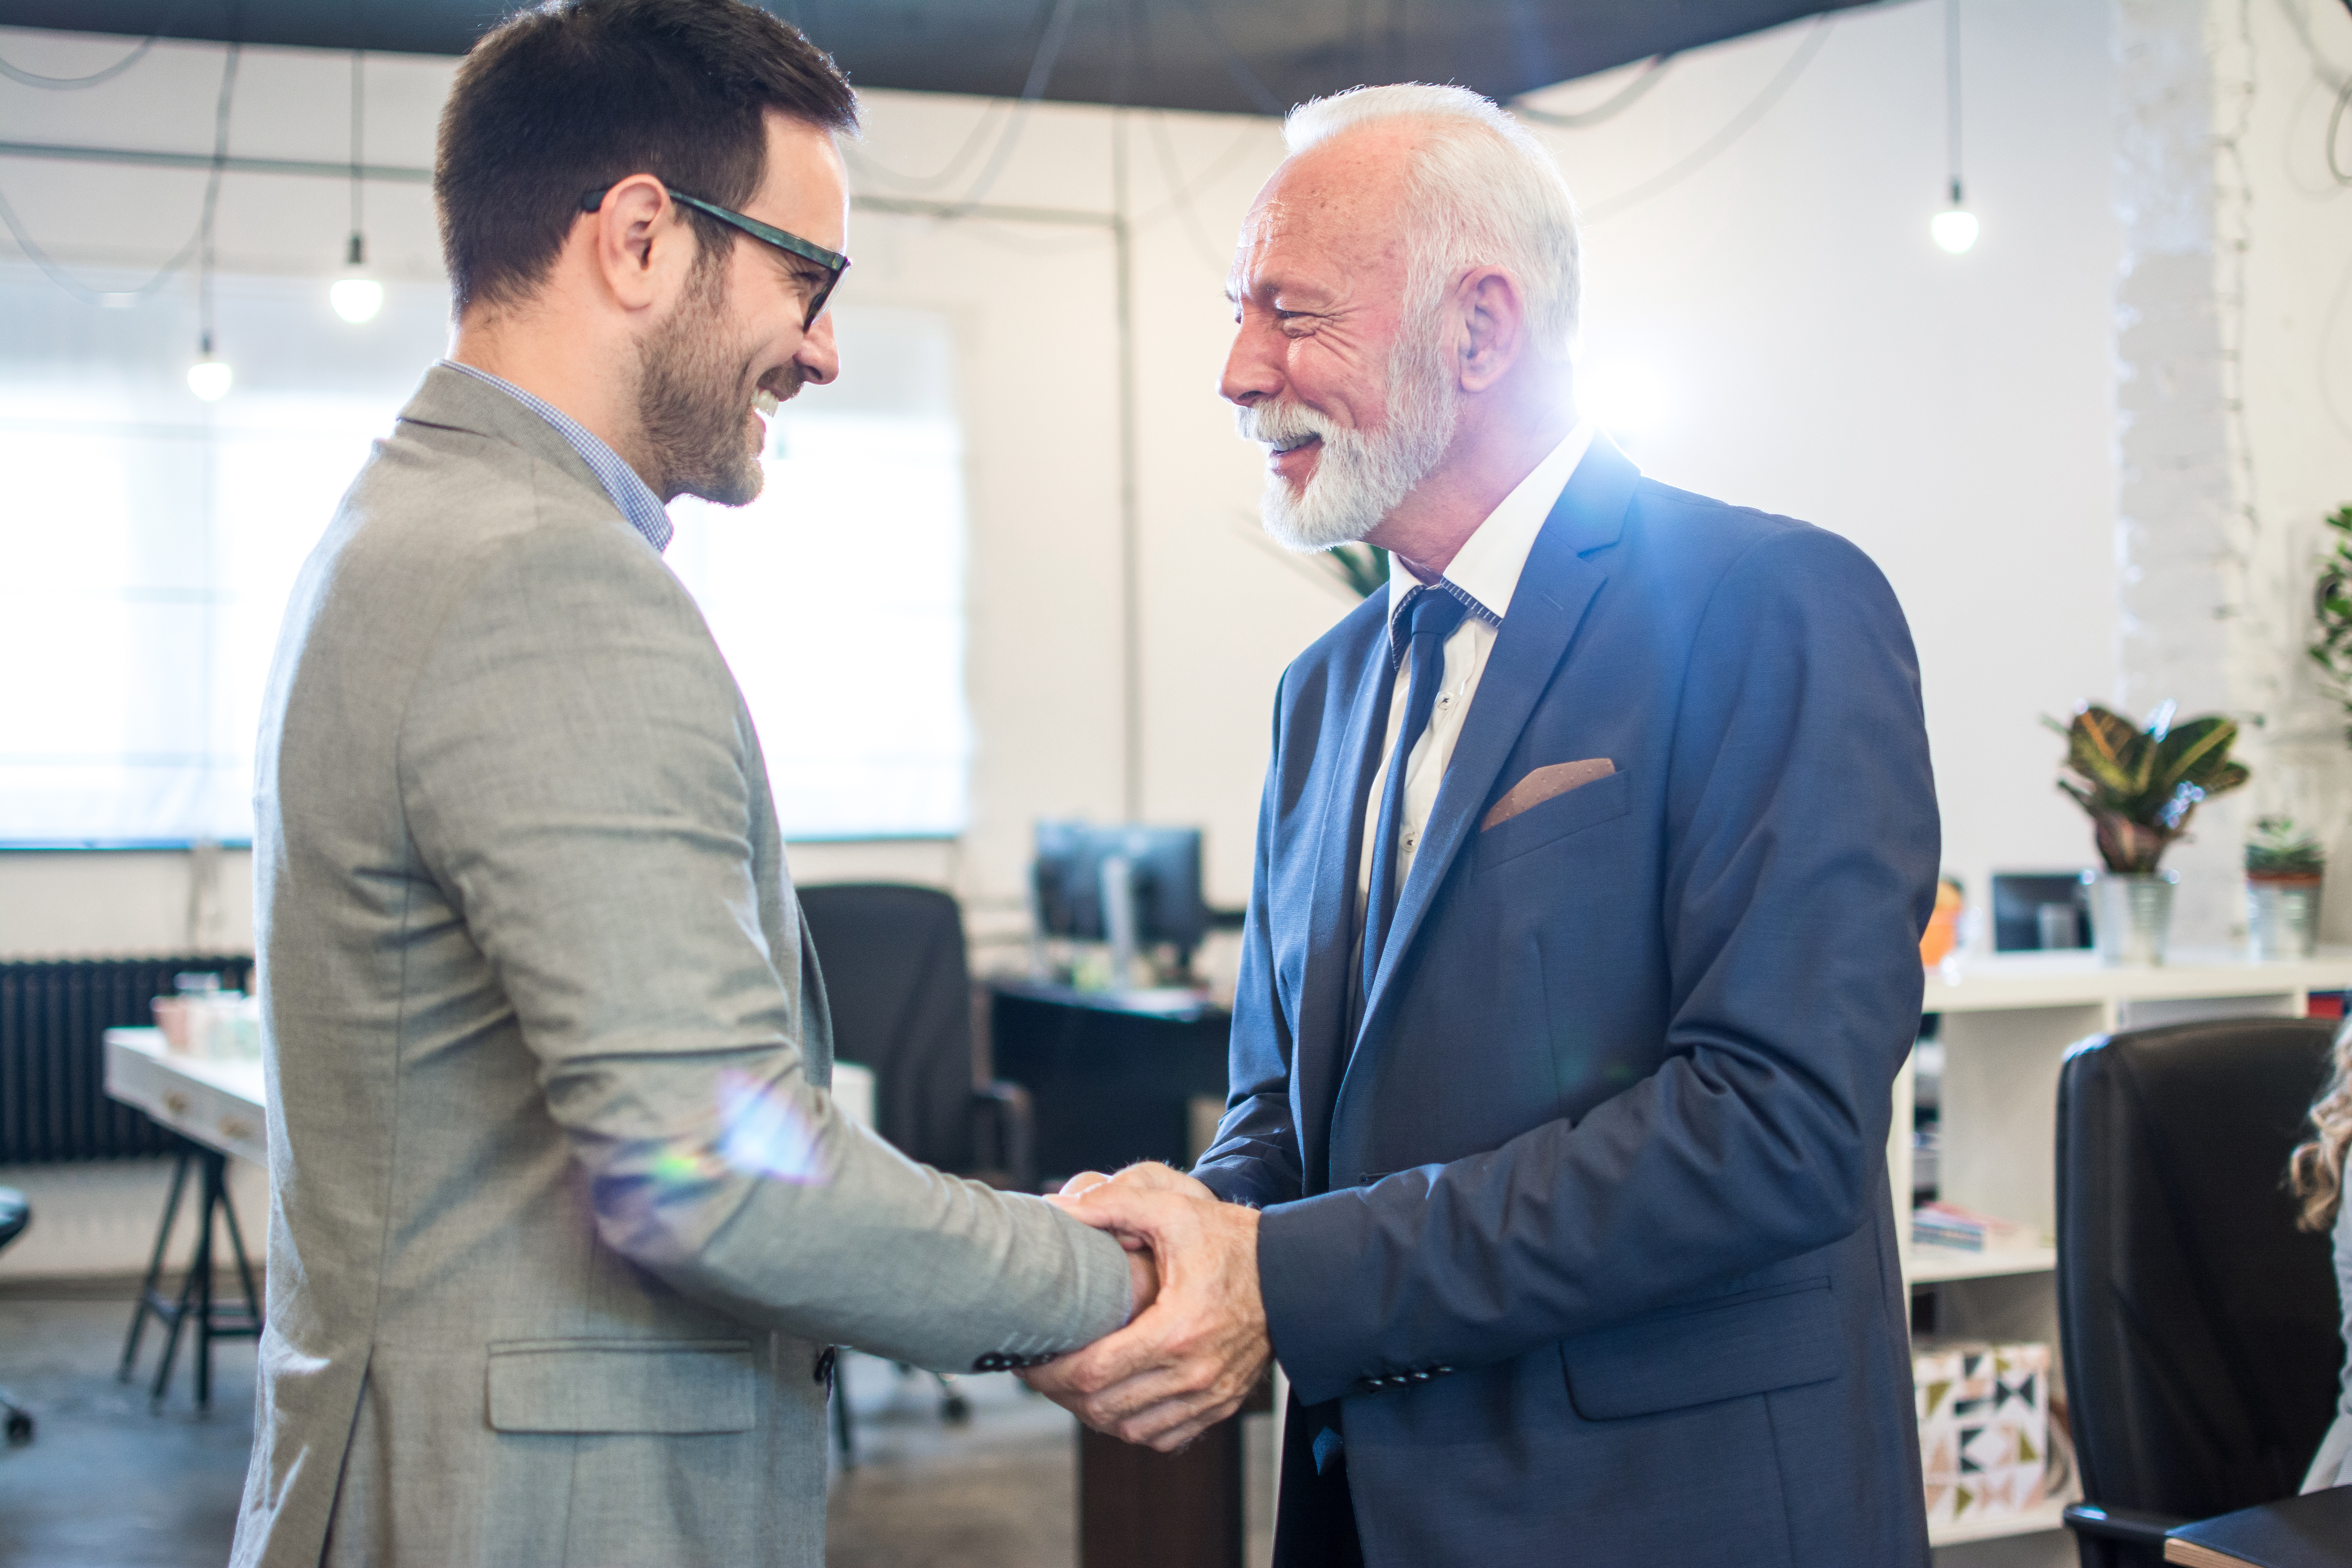 older man shaking a younger man's hand in an office